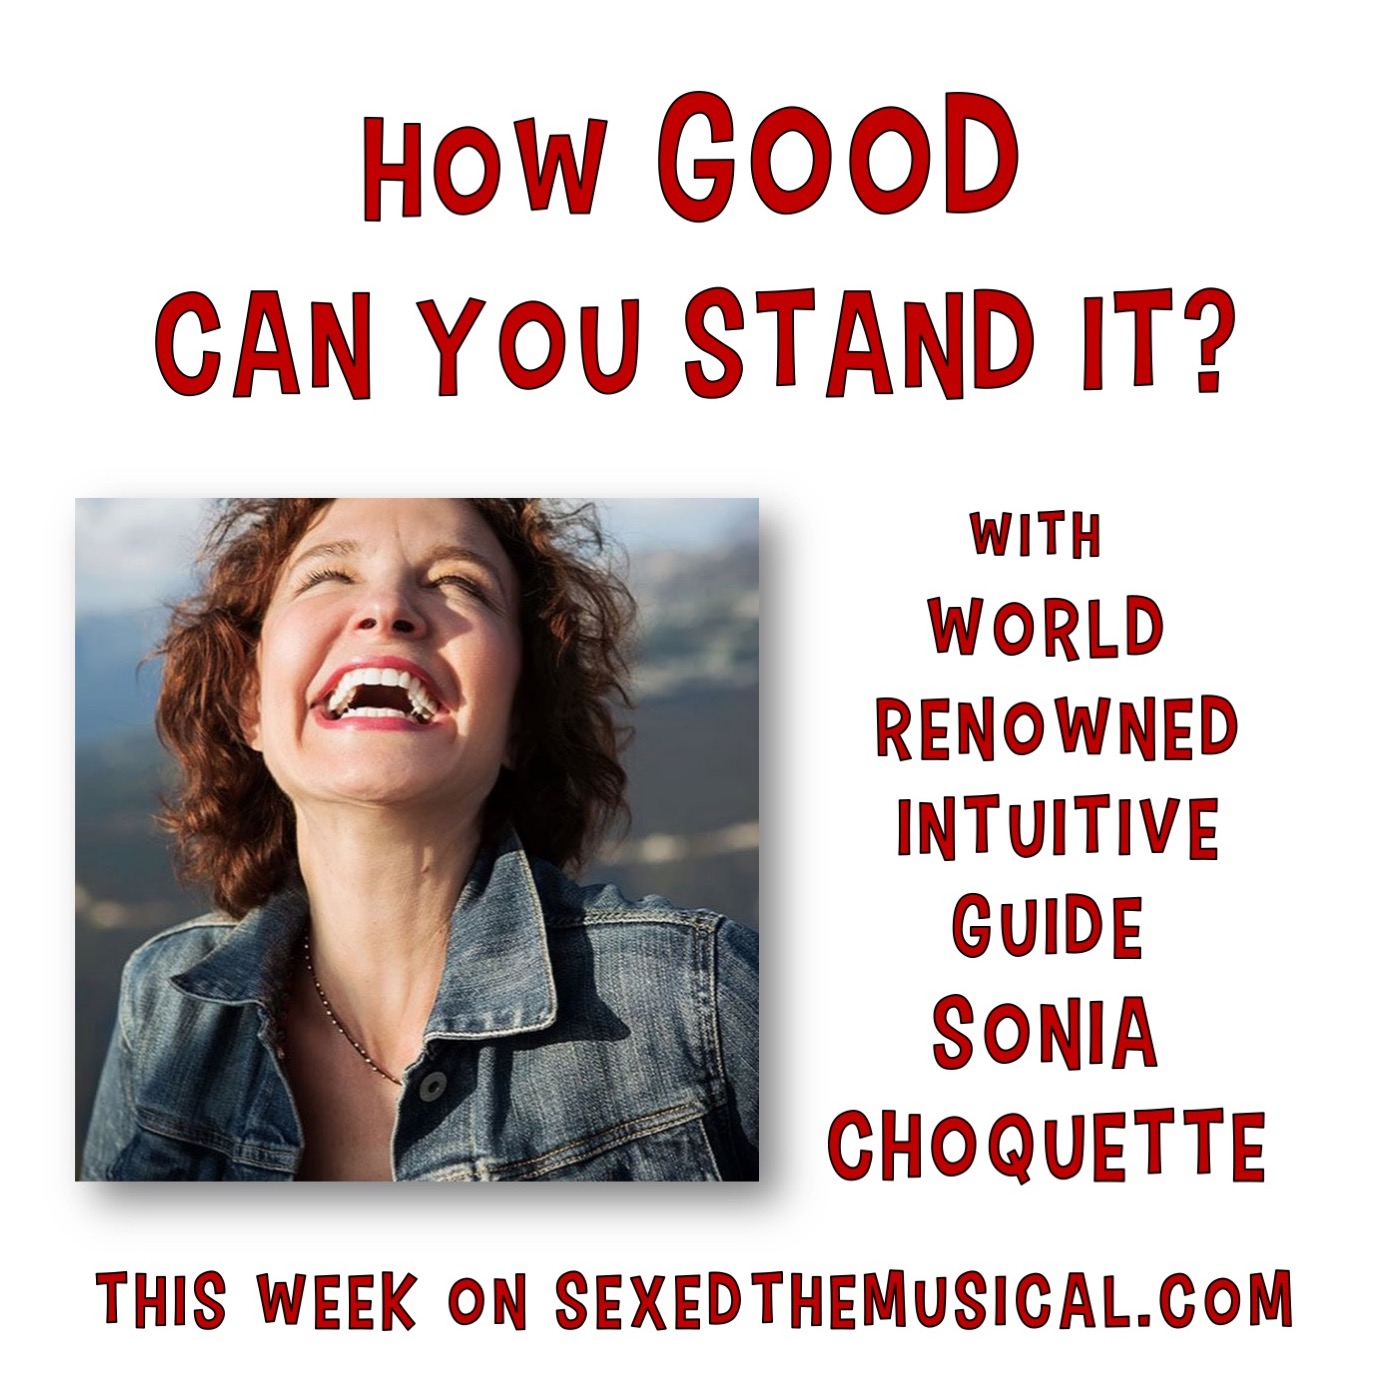 HOW GOOD CAN YOU STAND IT -- WITH SONIA CHOQUETTE